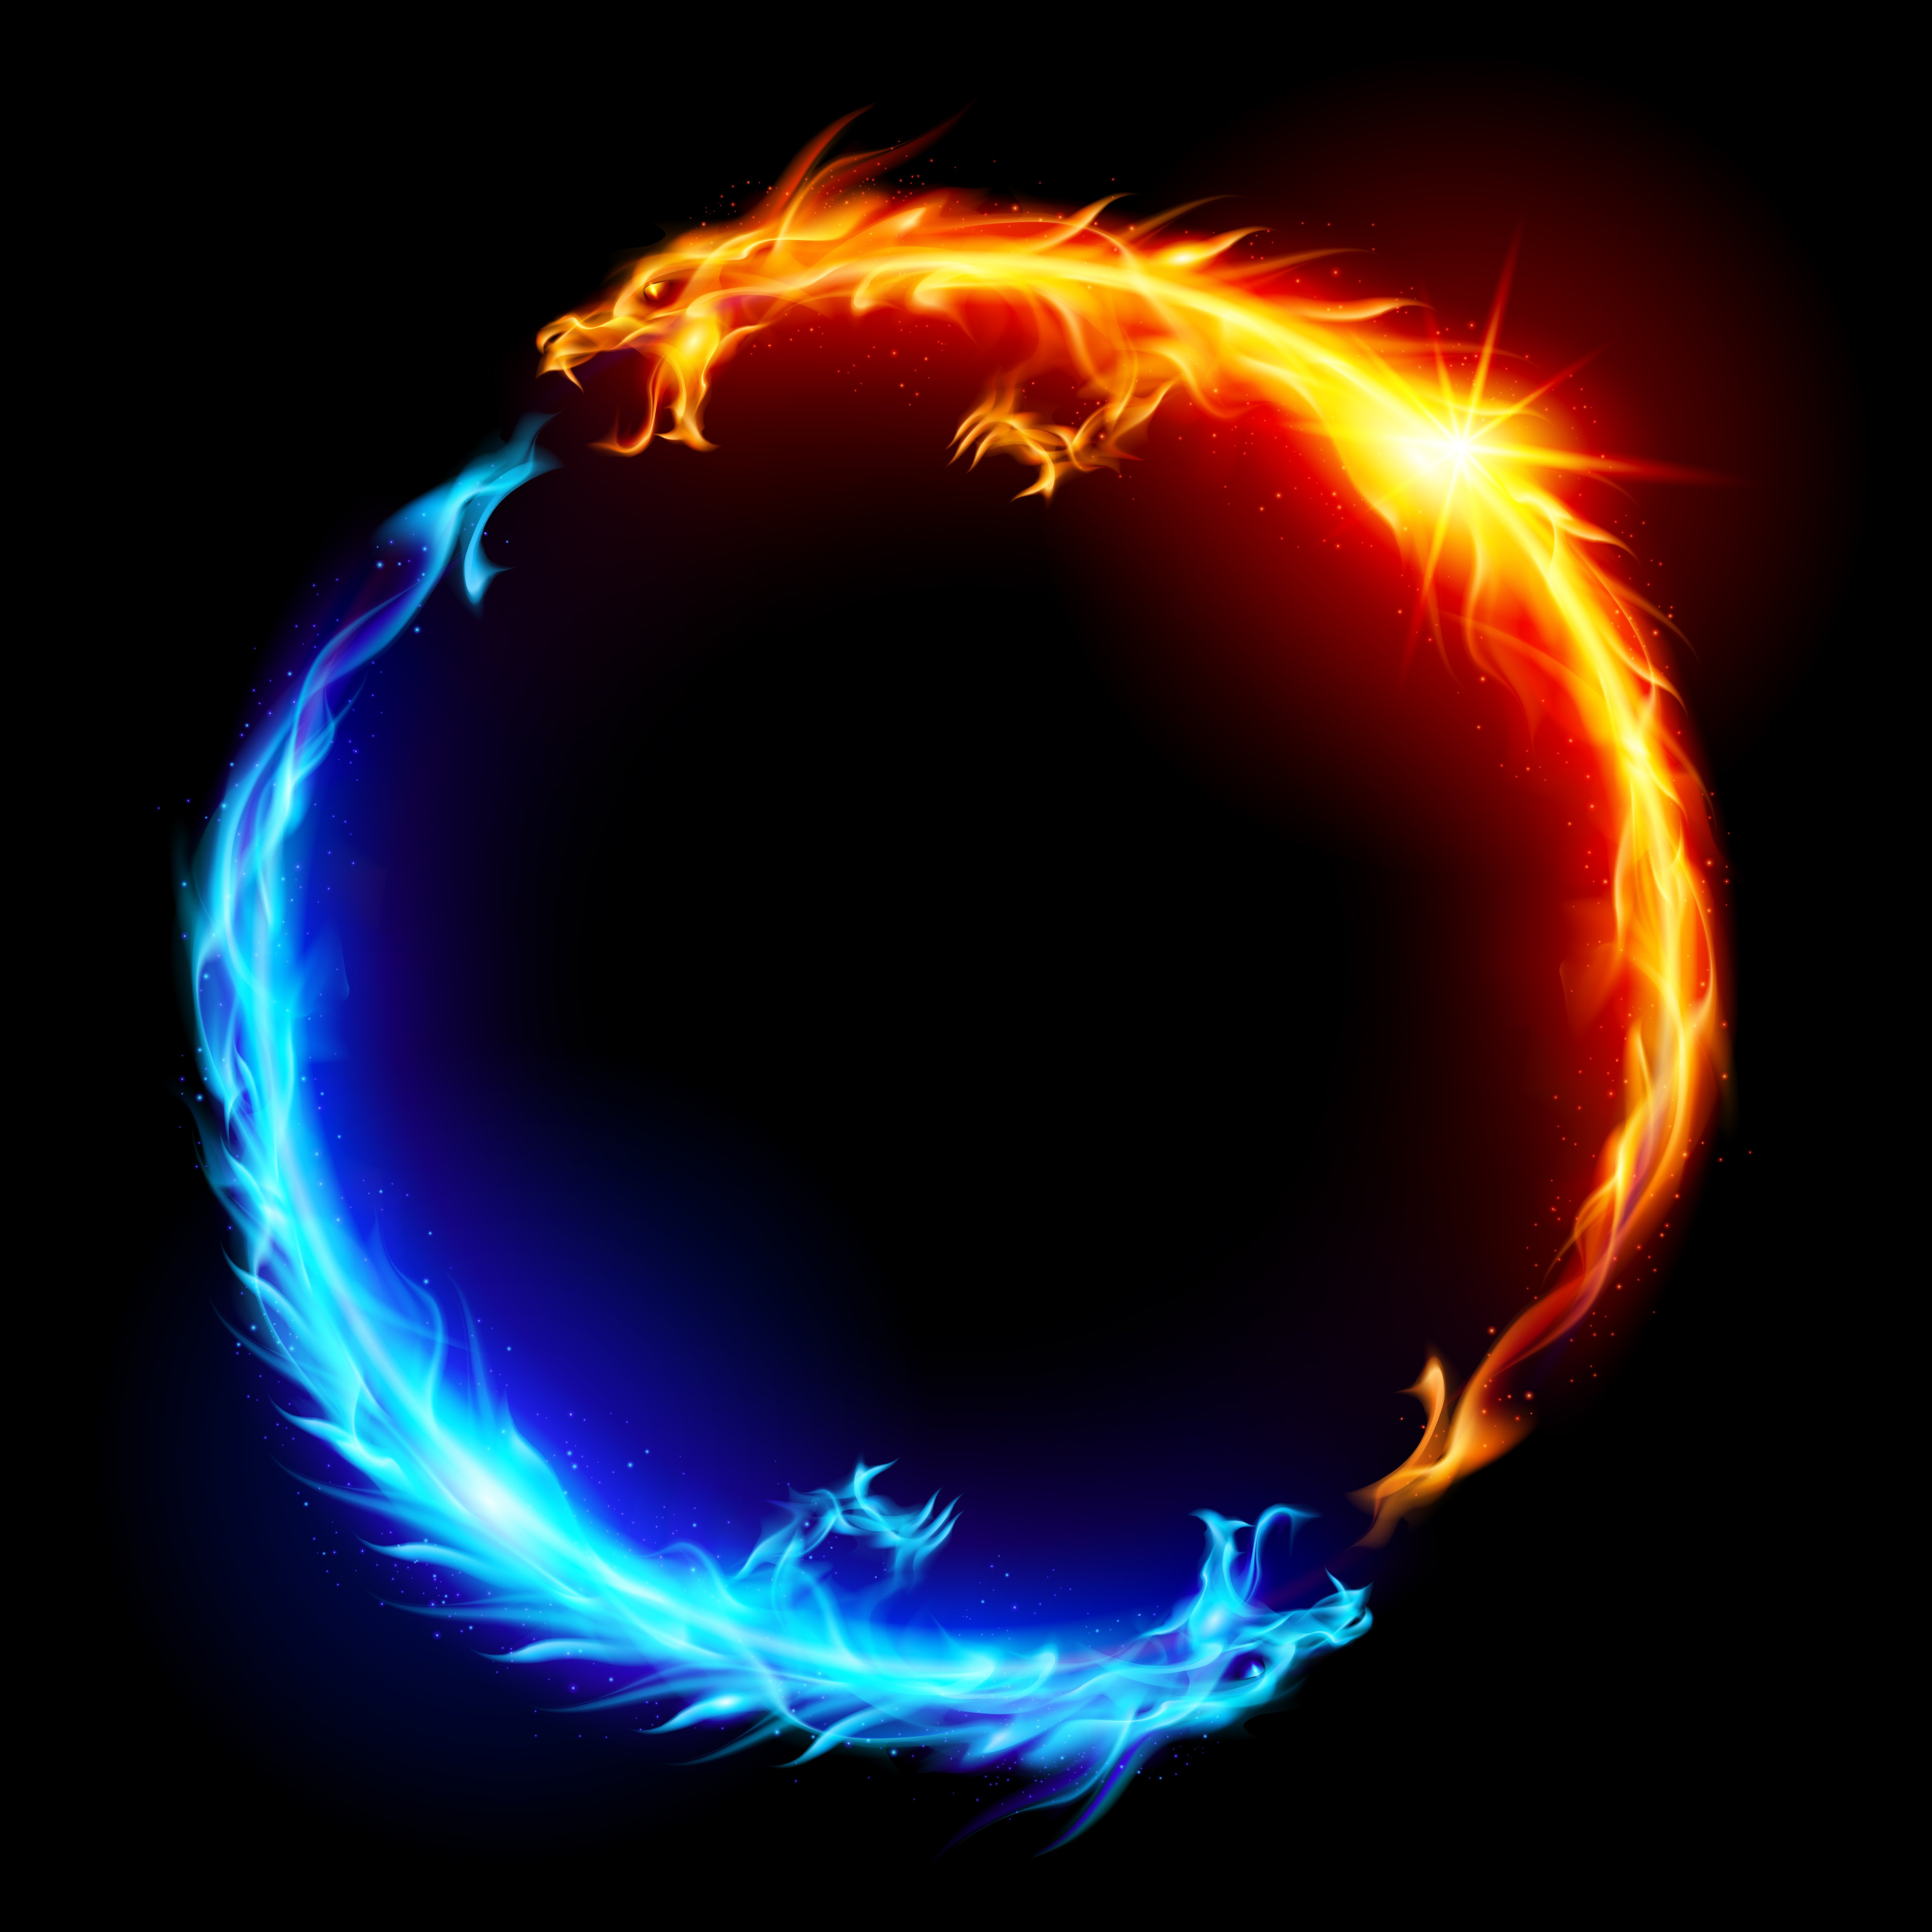 Red and Blue Fire Wallpaper - WallpaperSafari